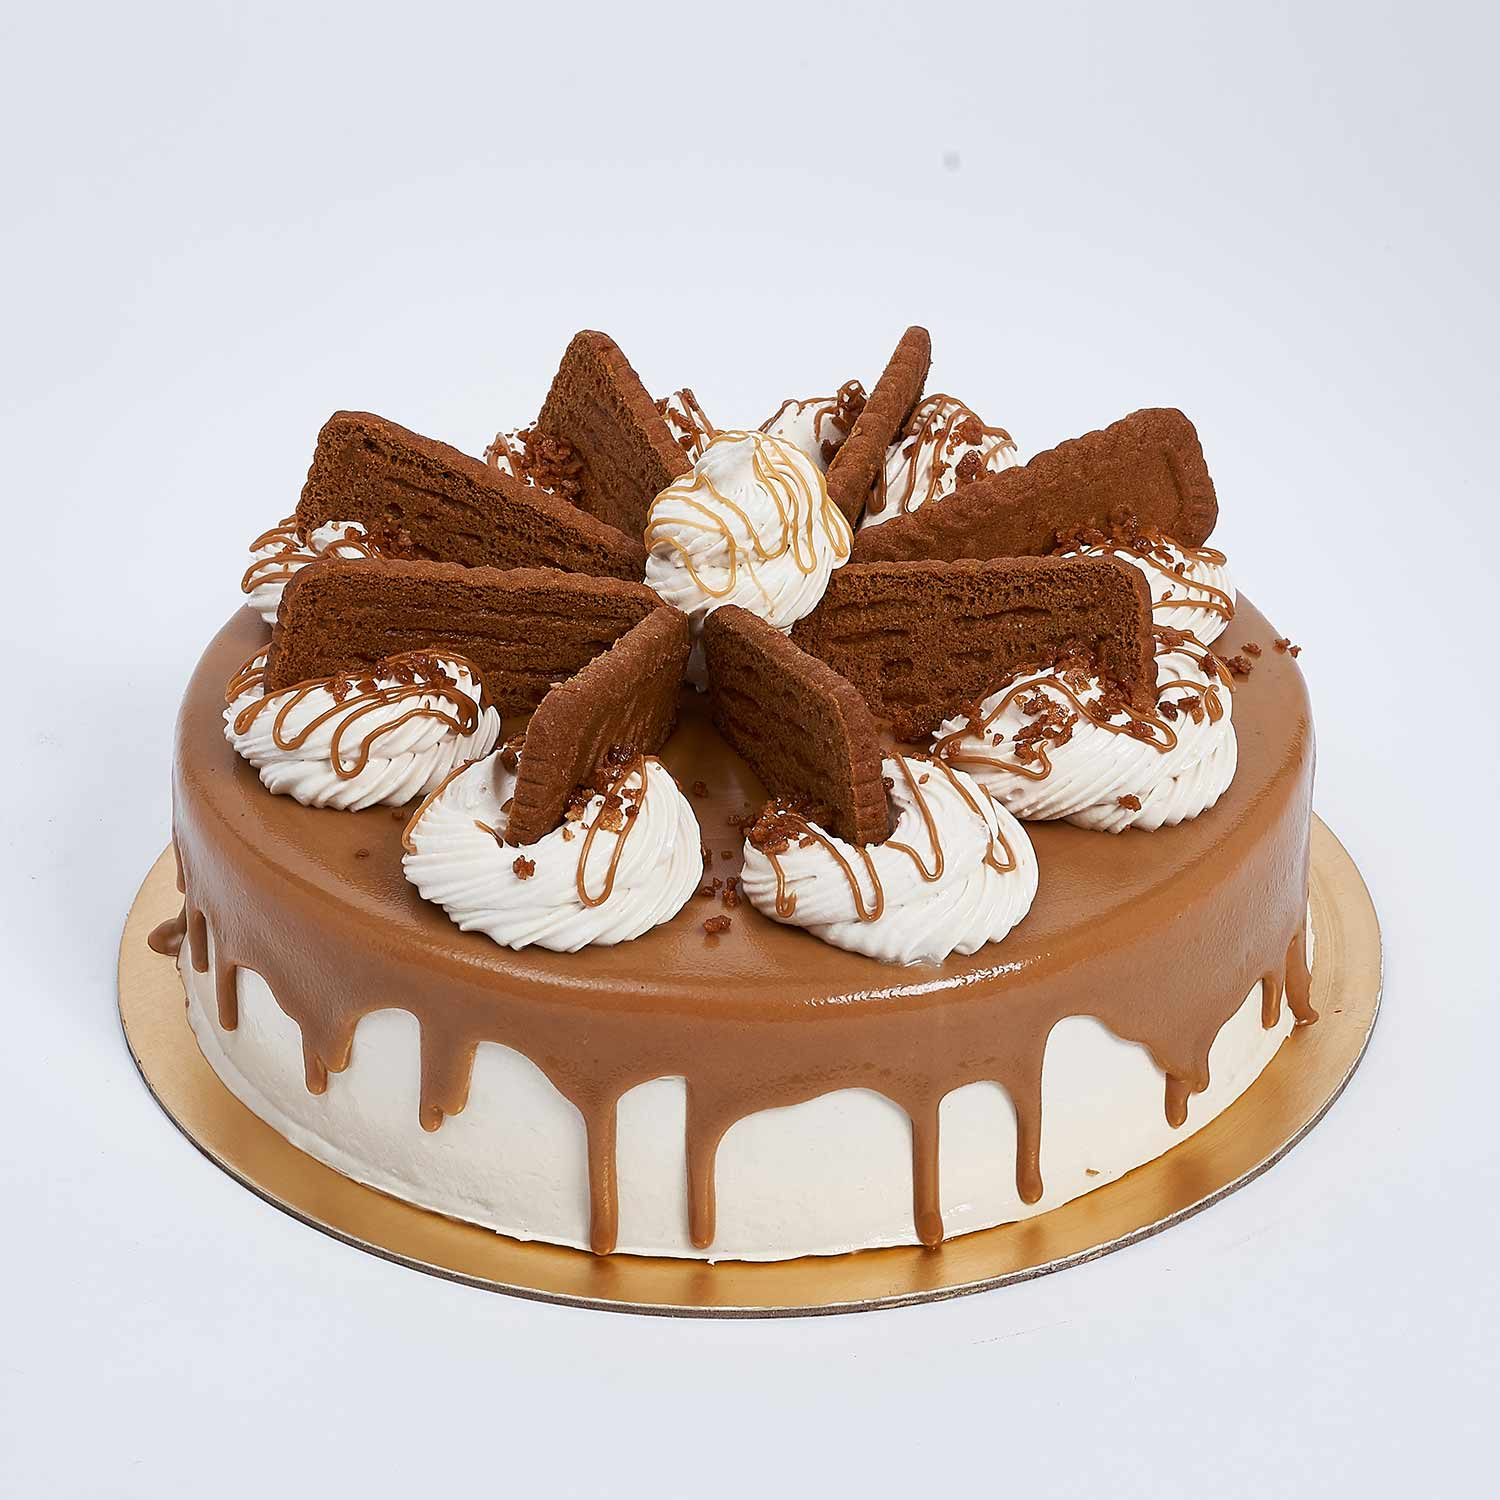 Heavenly Lotus Biscoff Cake: Cakes Delivery in Dubai